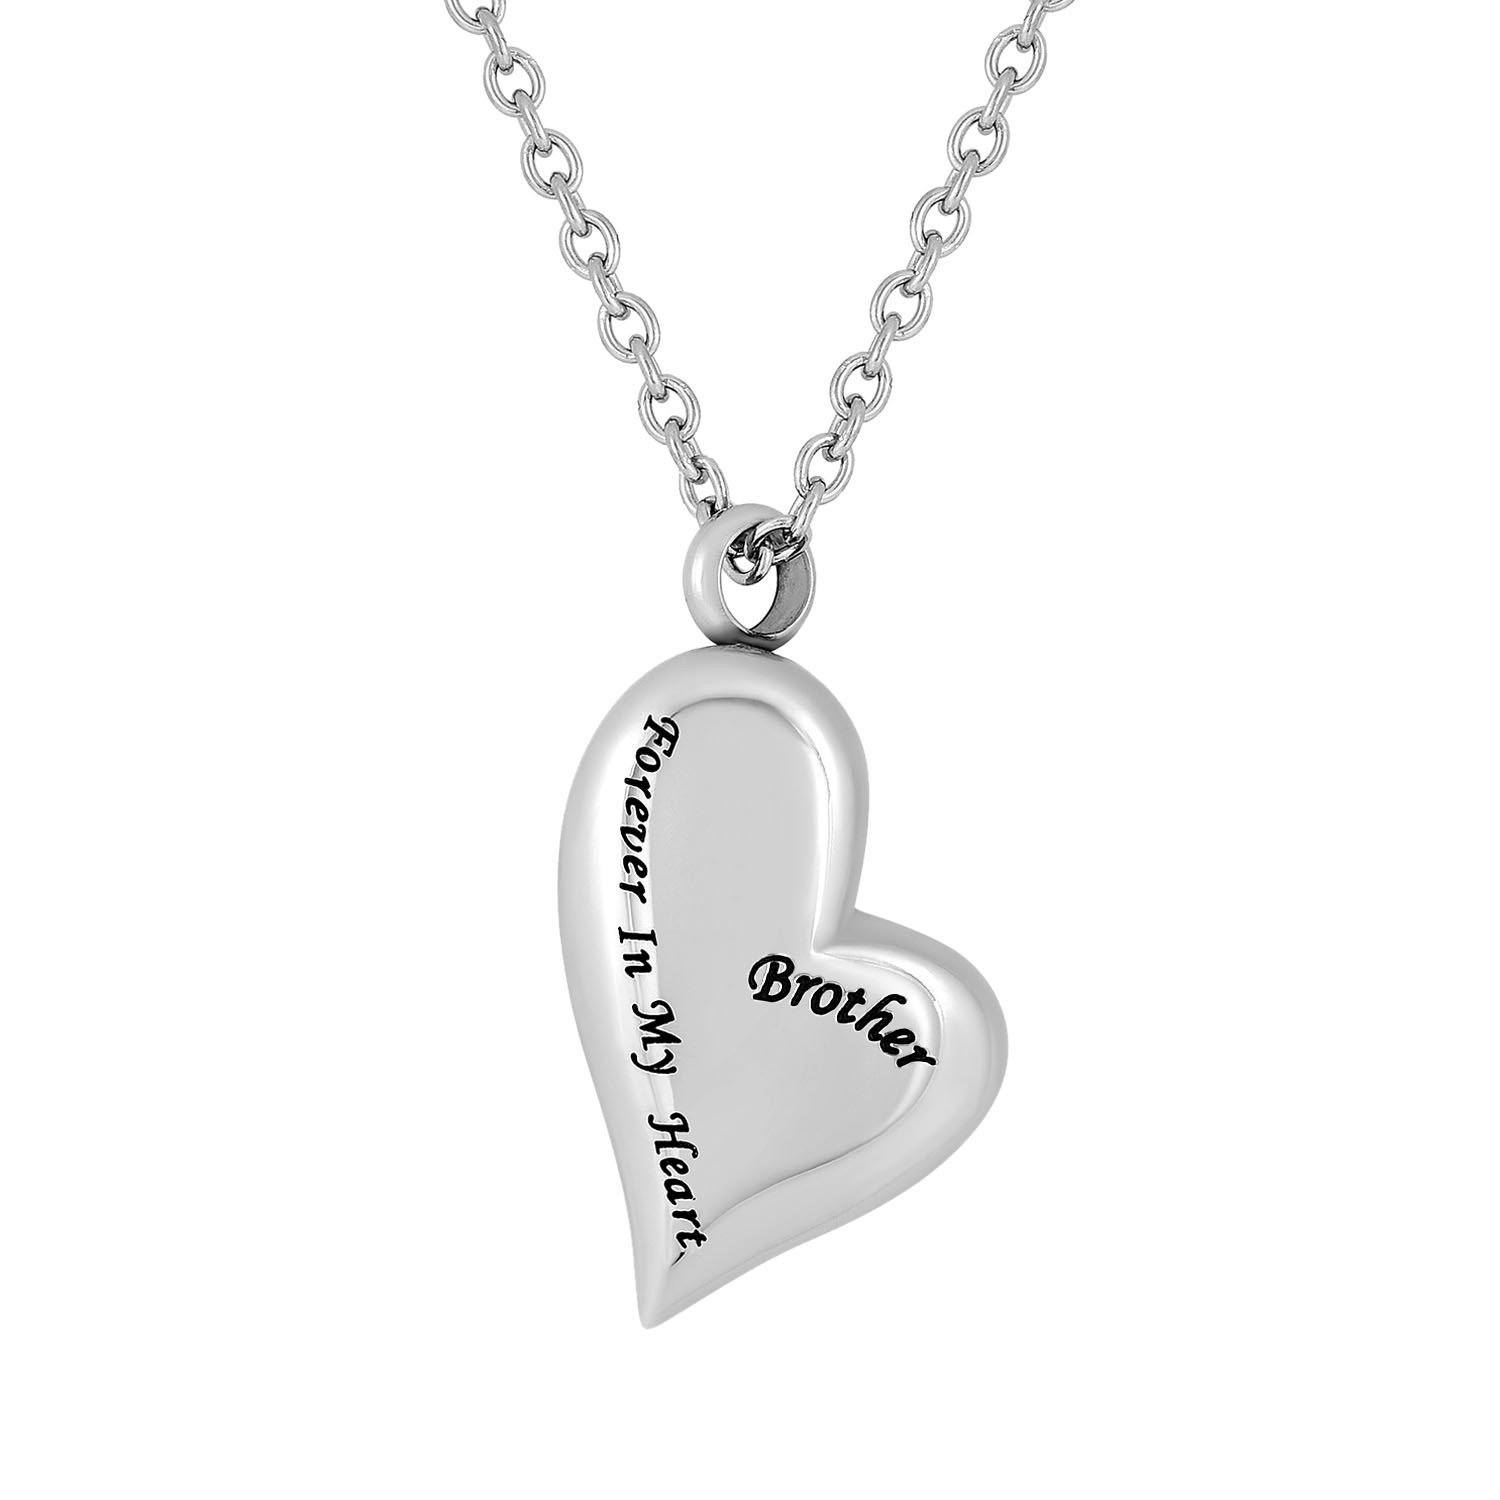 Cremation Jewelry Necklace for Ashes - Brother Forever In My Heart